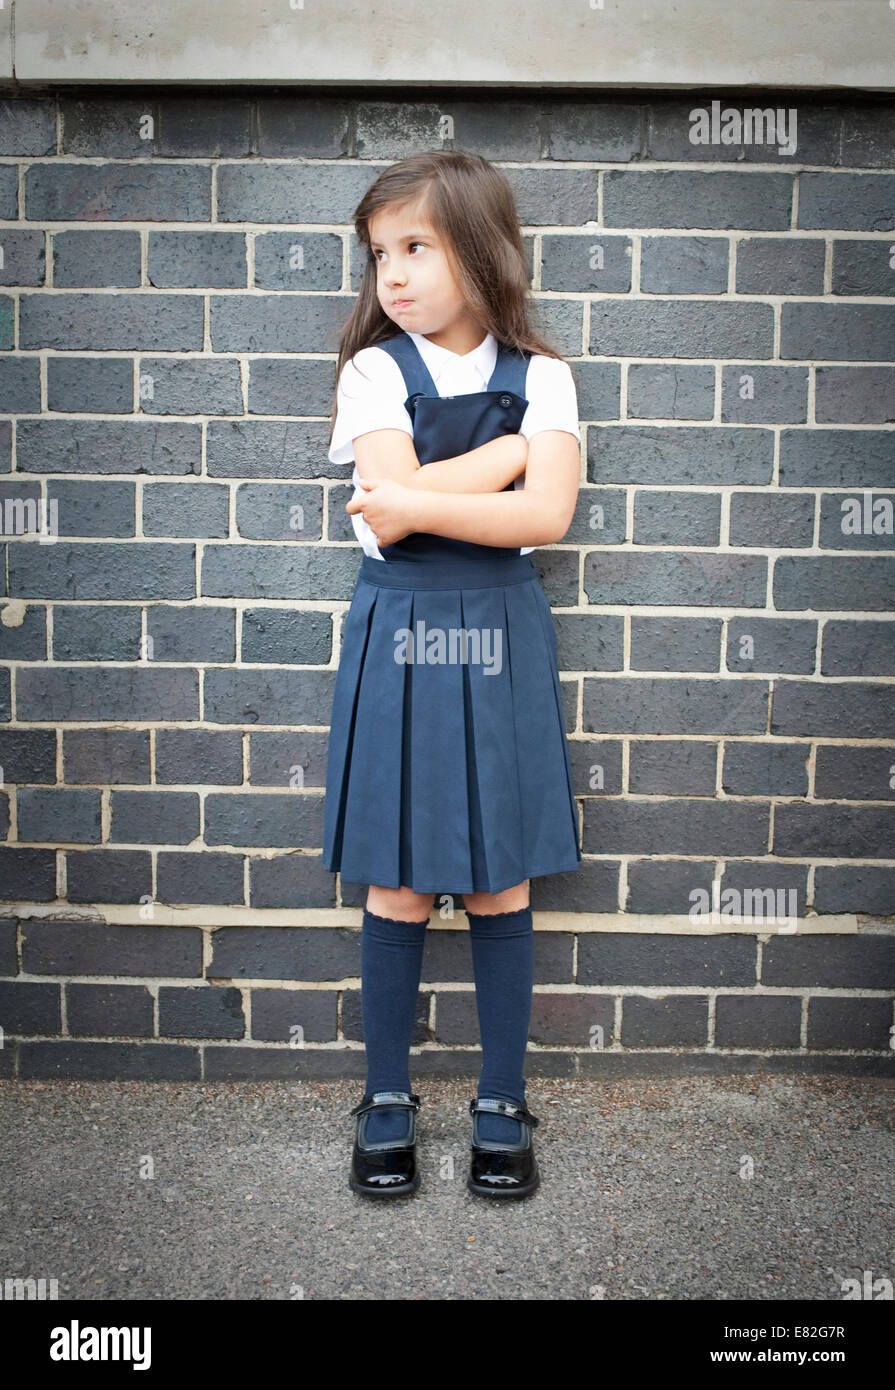 Portrait of girl in playground looking grumpy with arms folded - Stock Image